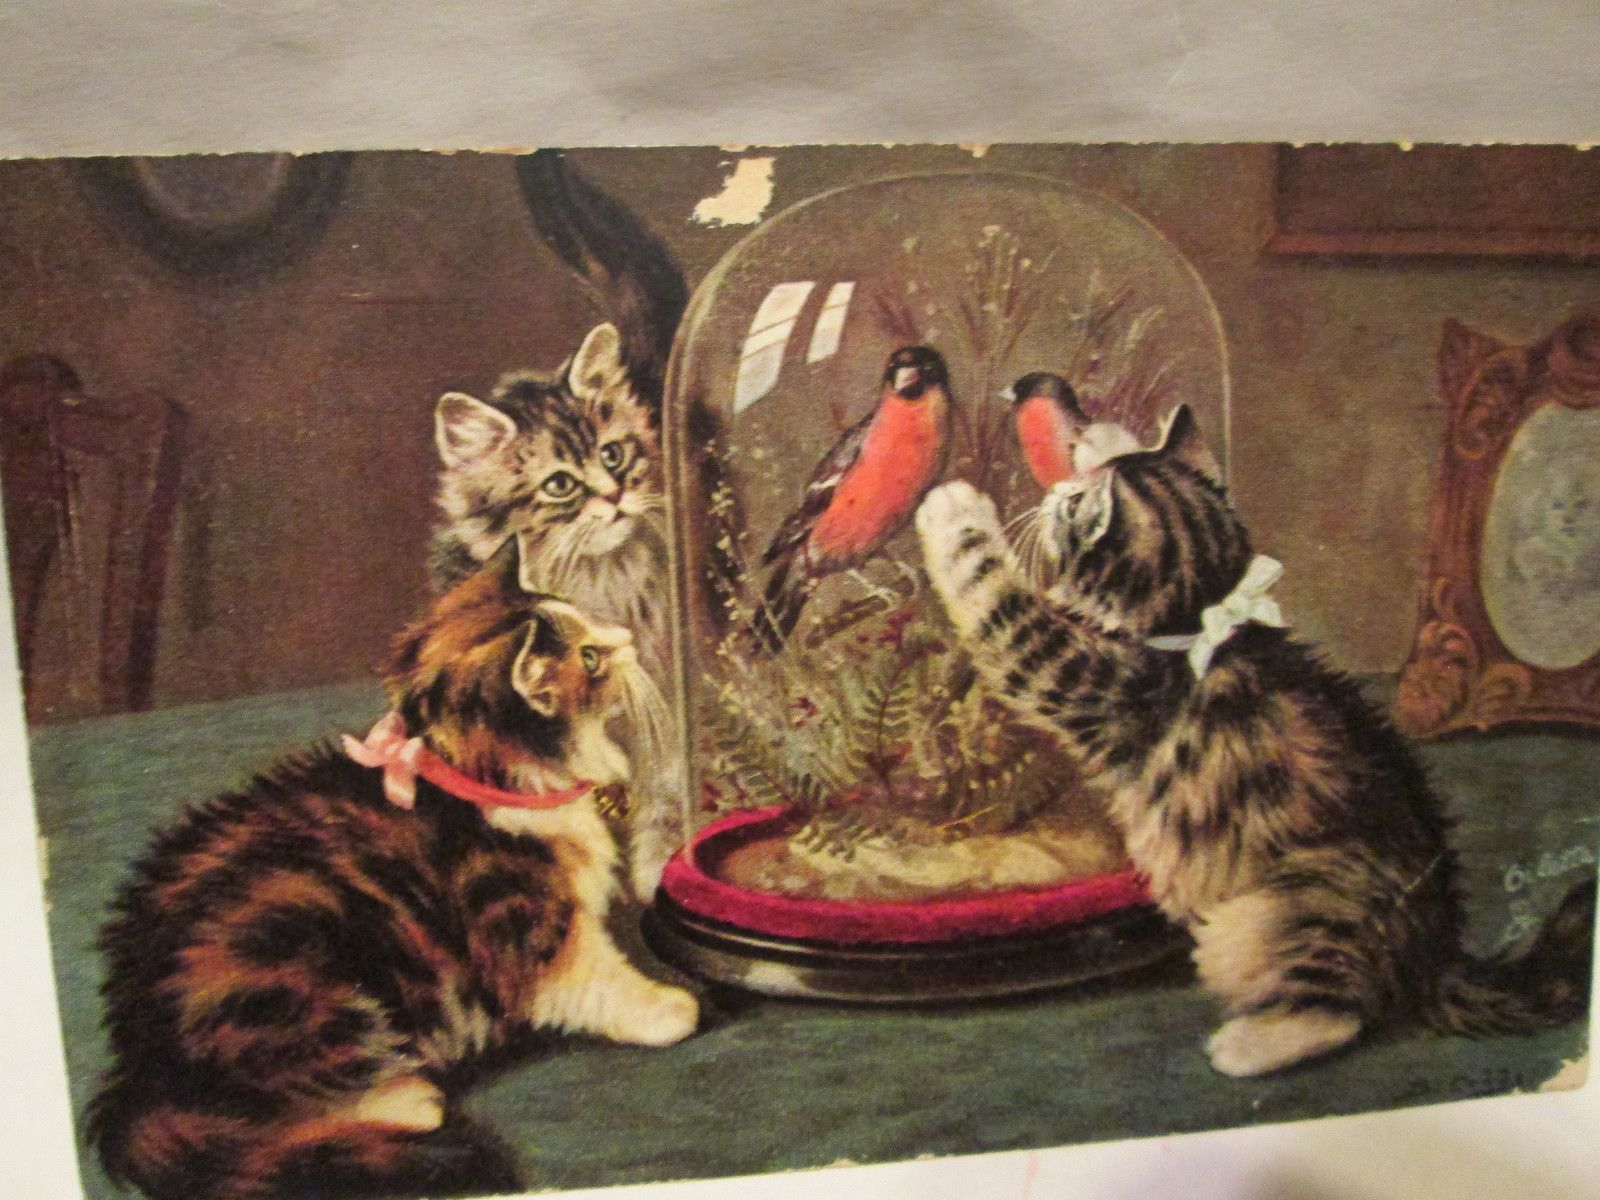 Vintage 1906 Post Card of Three Cats Trying to Get Two Birds in A Cage | eBay